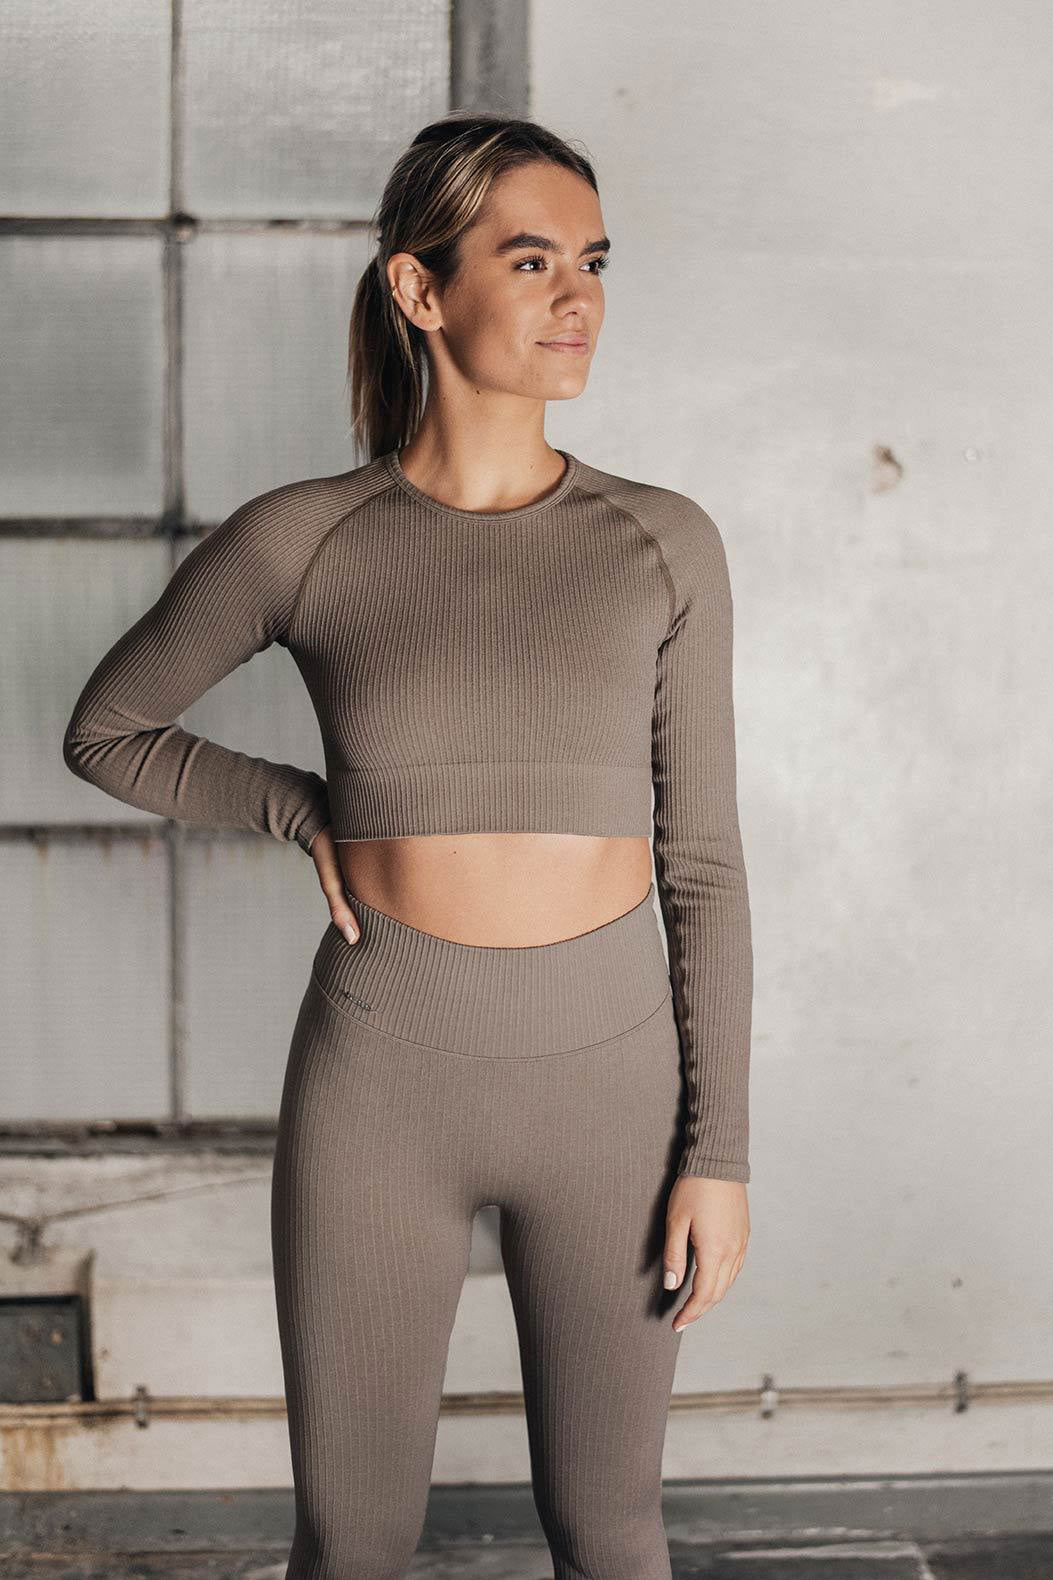 Aim'n Ribbed Seamless LS Crop - Espresso | Shop AIM'N at GOALS NZ